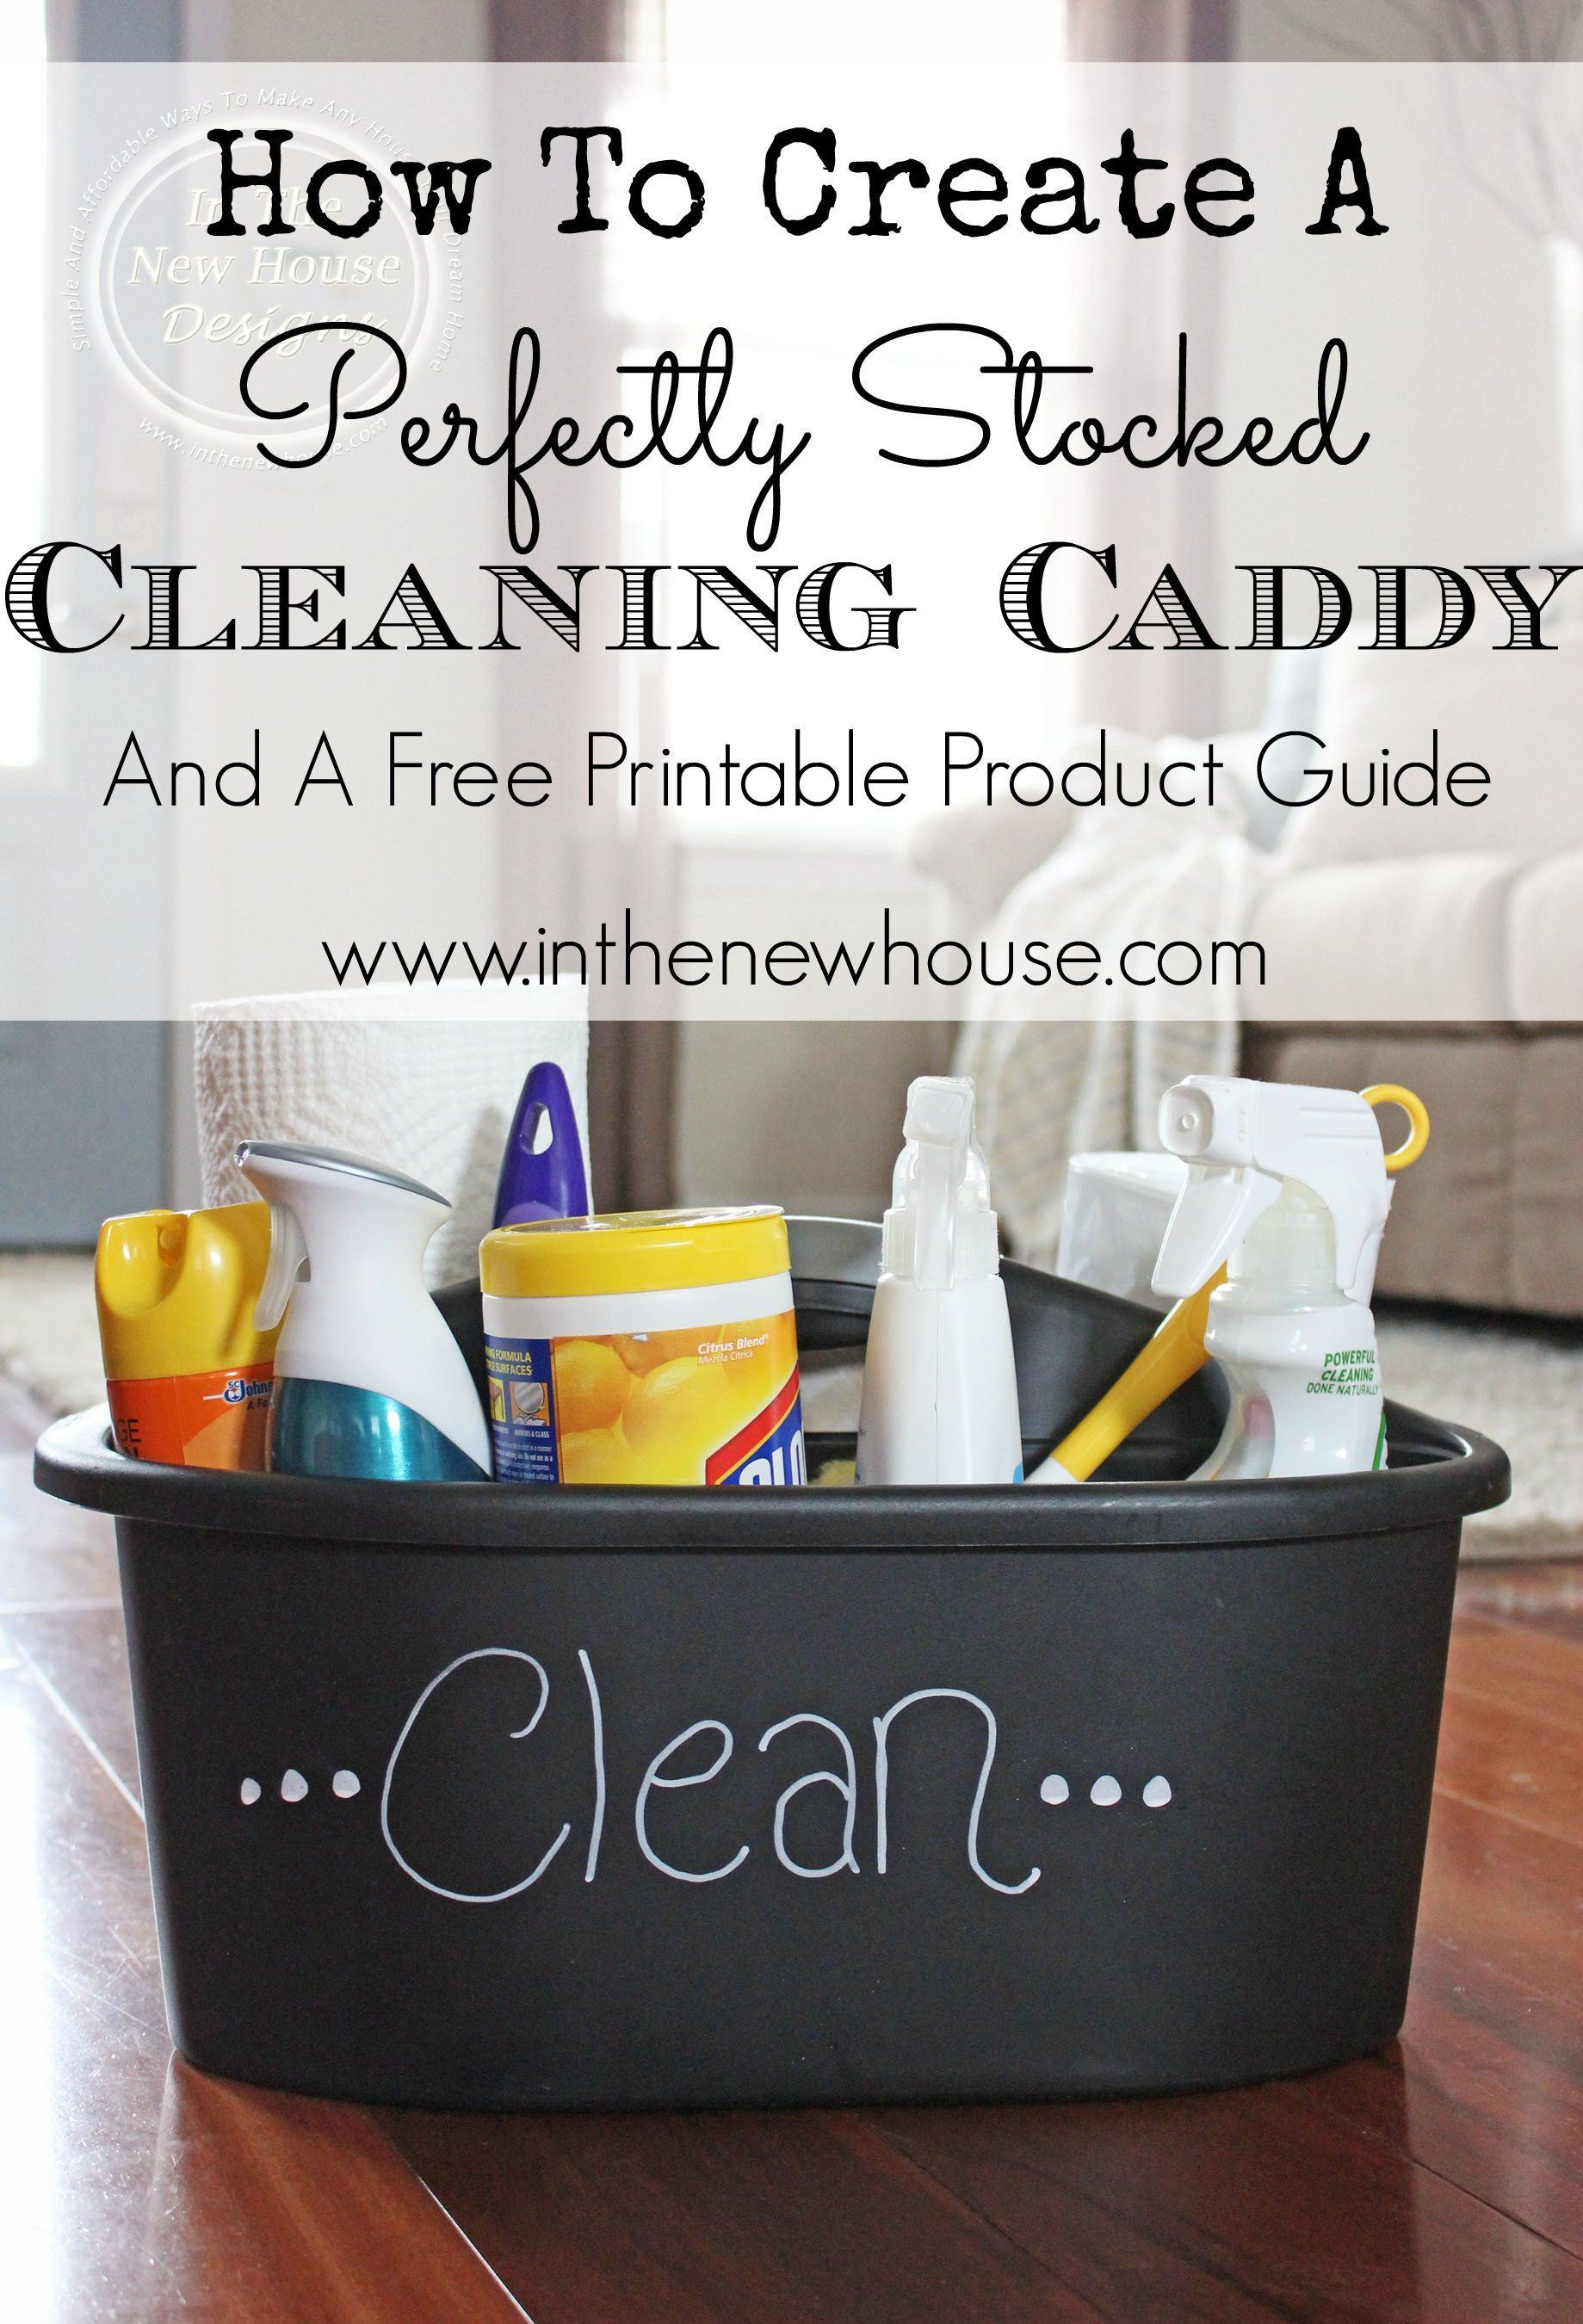 How To Create A Perfectly Stocked Cleaning Caddy | Cleaning caddy ...